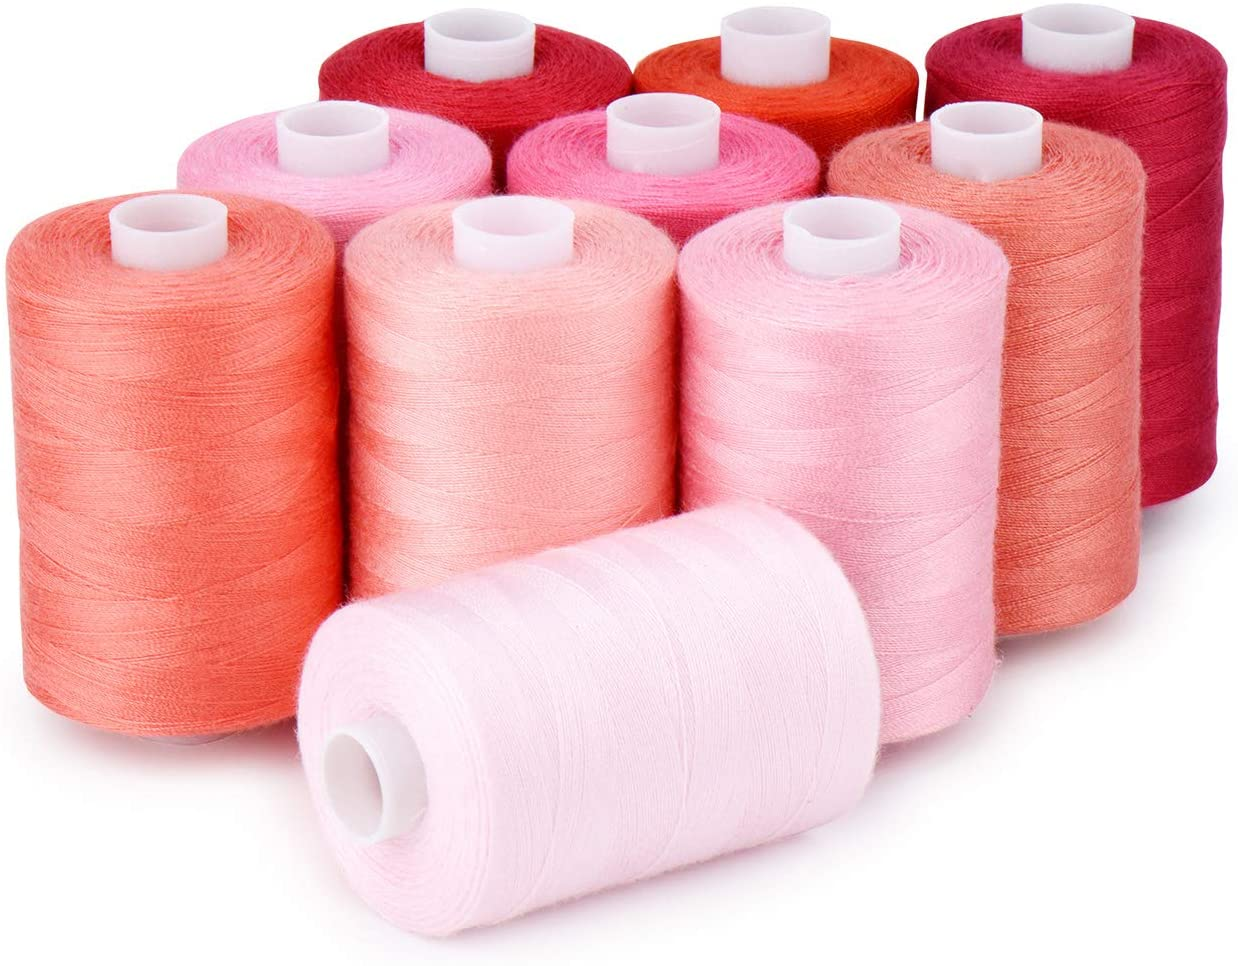 Sewing Thread 12 Colors Set 40S/2 for Sewing Machine,Quilting,Hand Sewing (10 Red Colors)